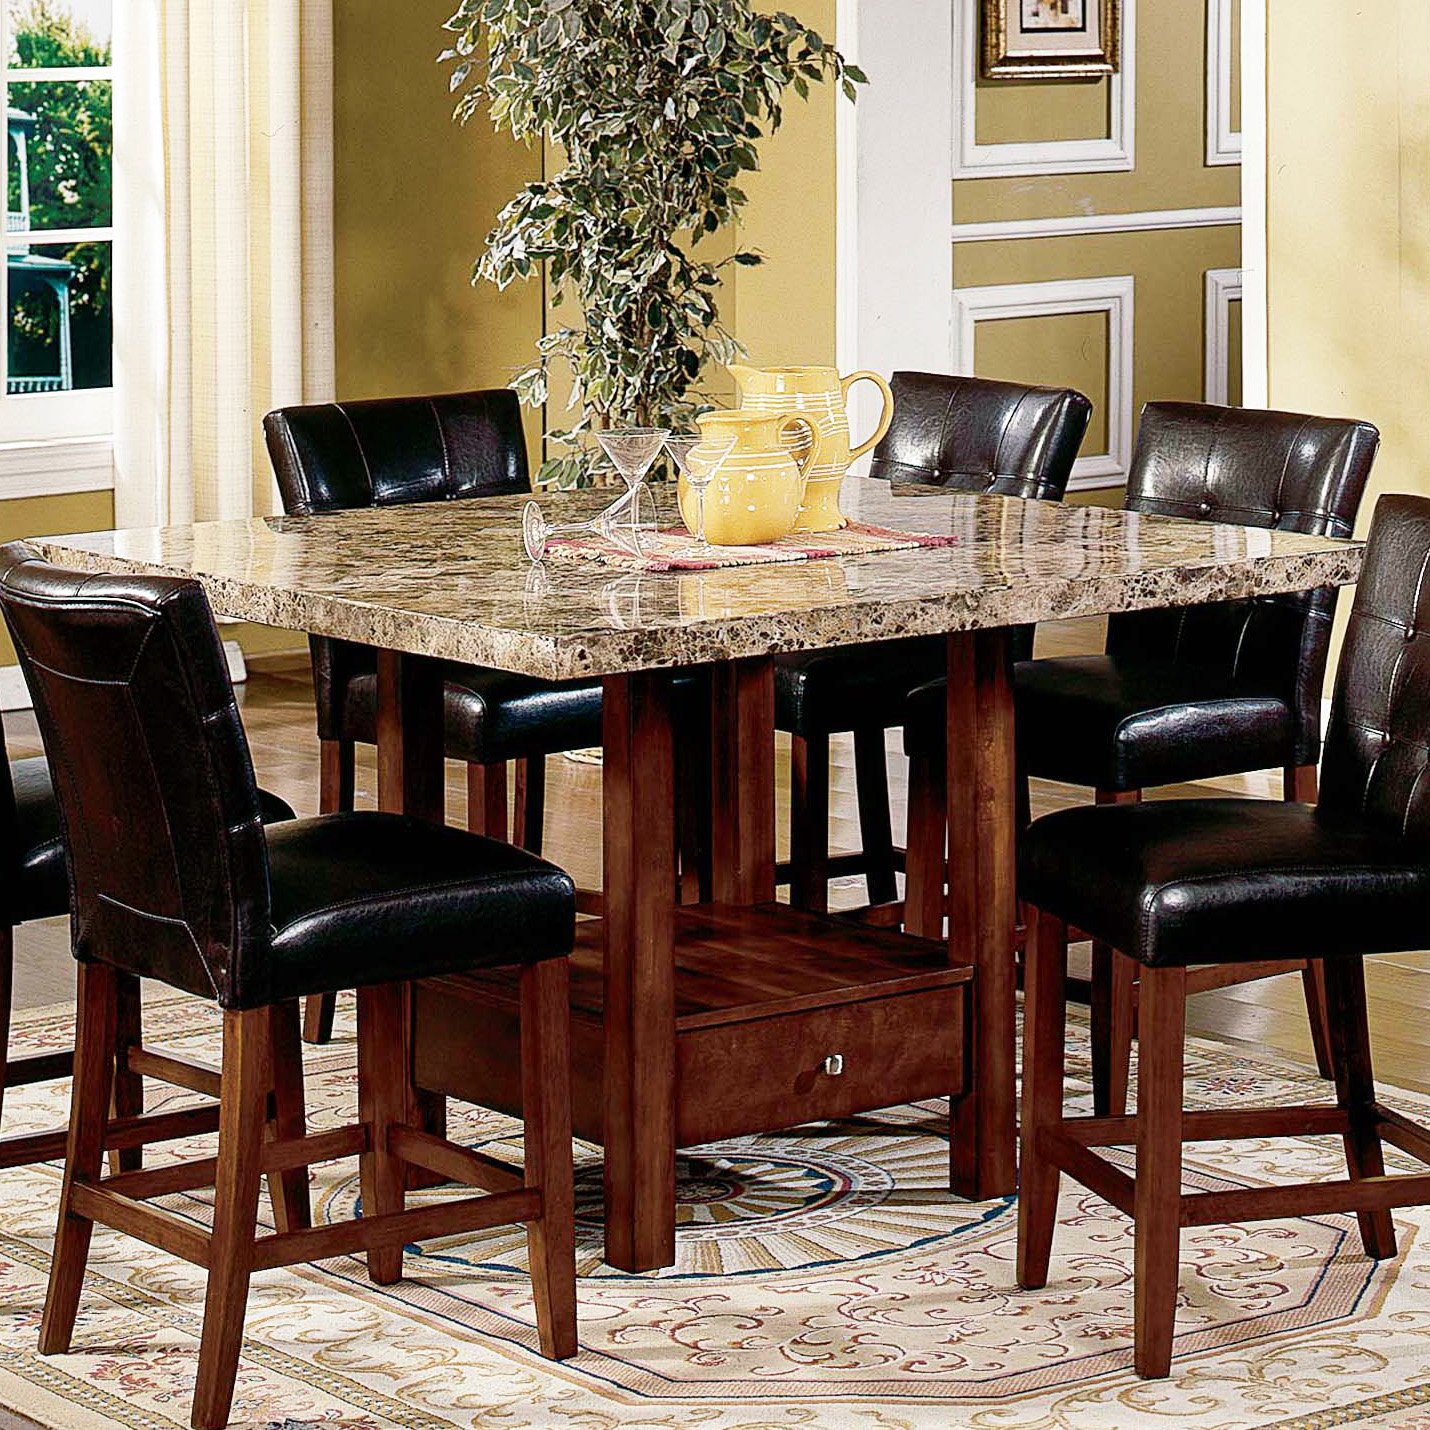 inside your dining room dinette sets are including table chairs and